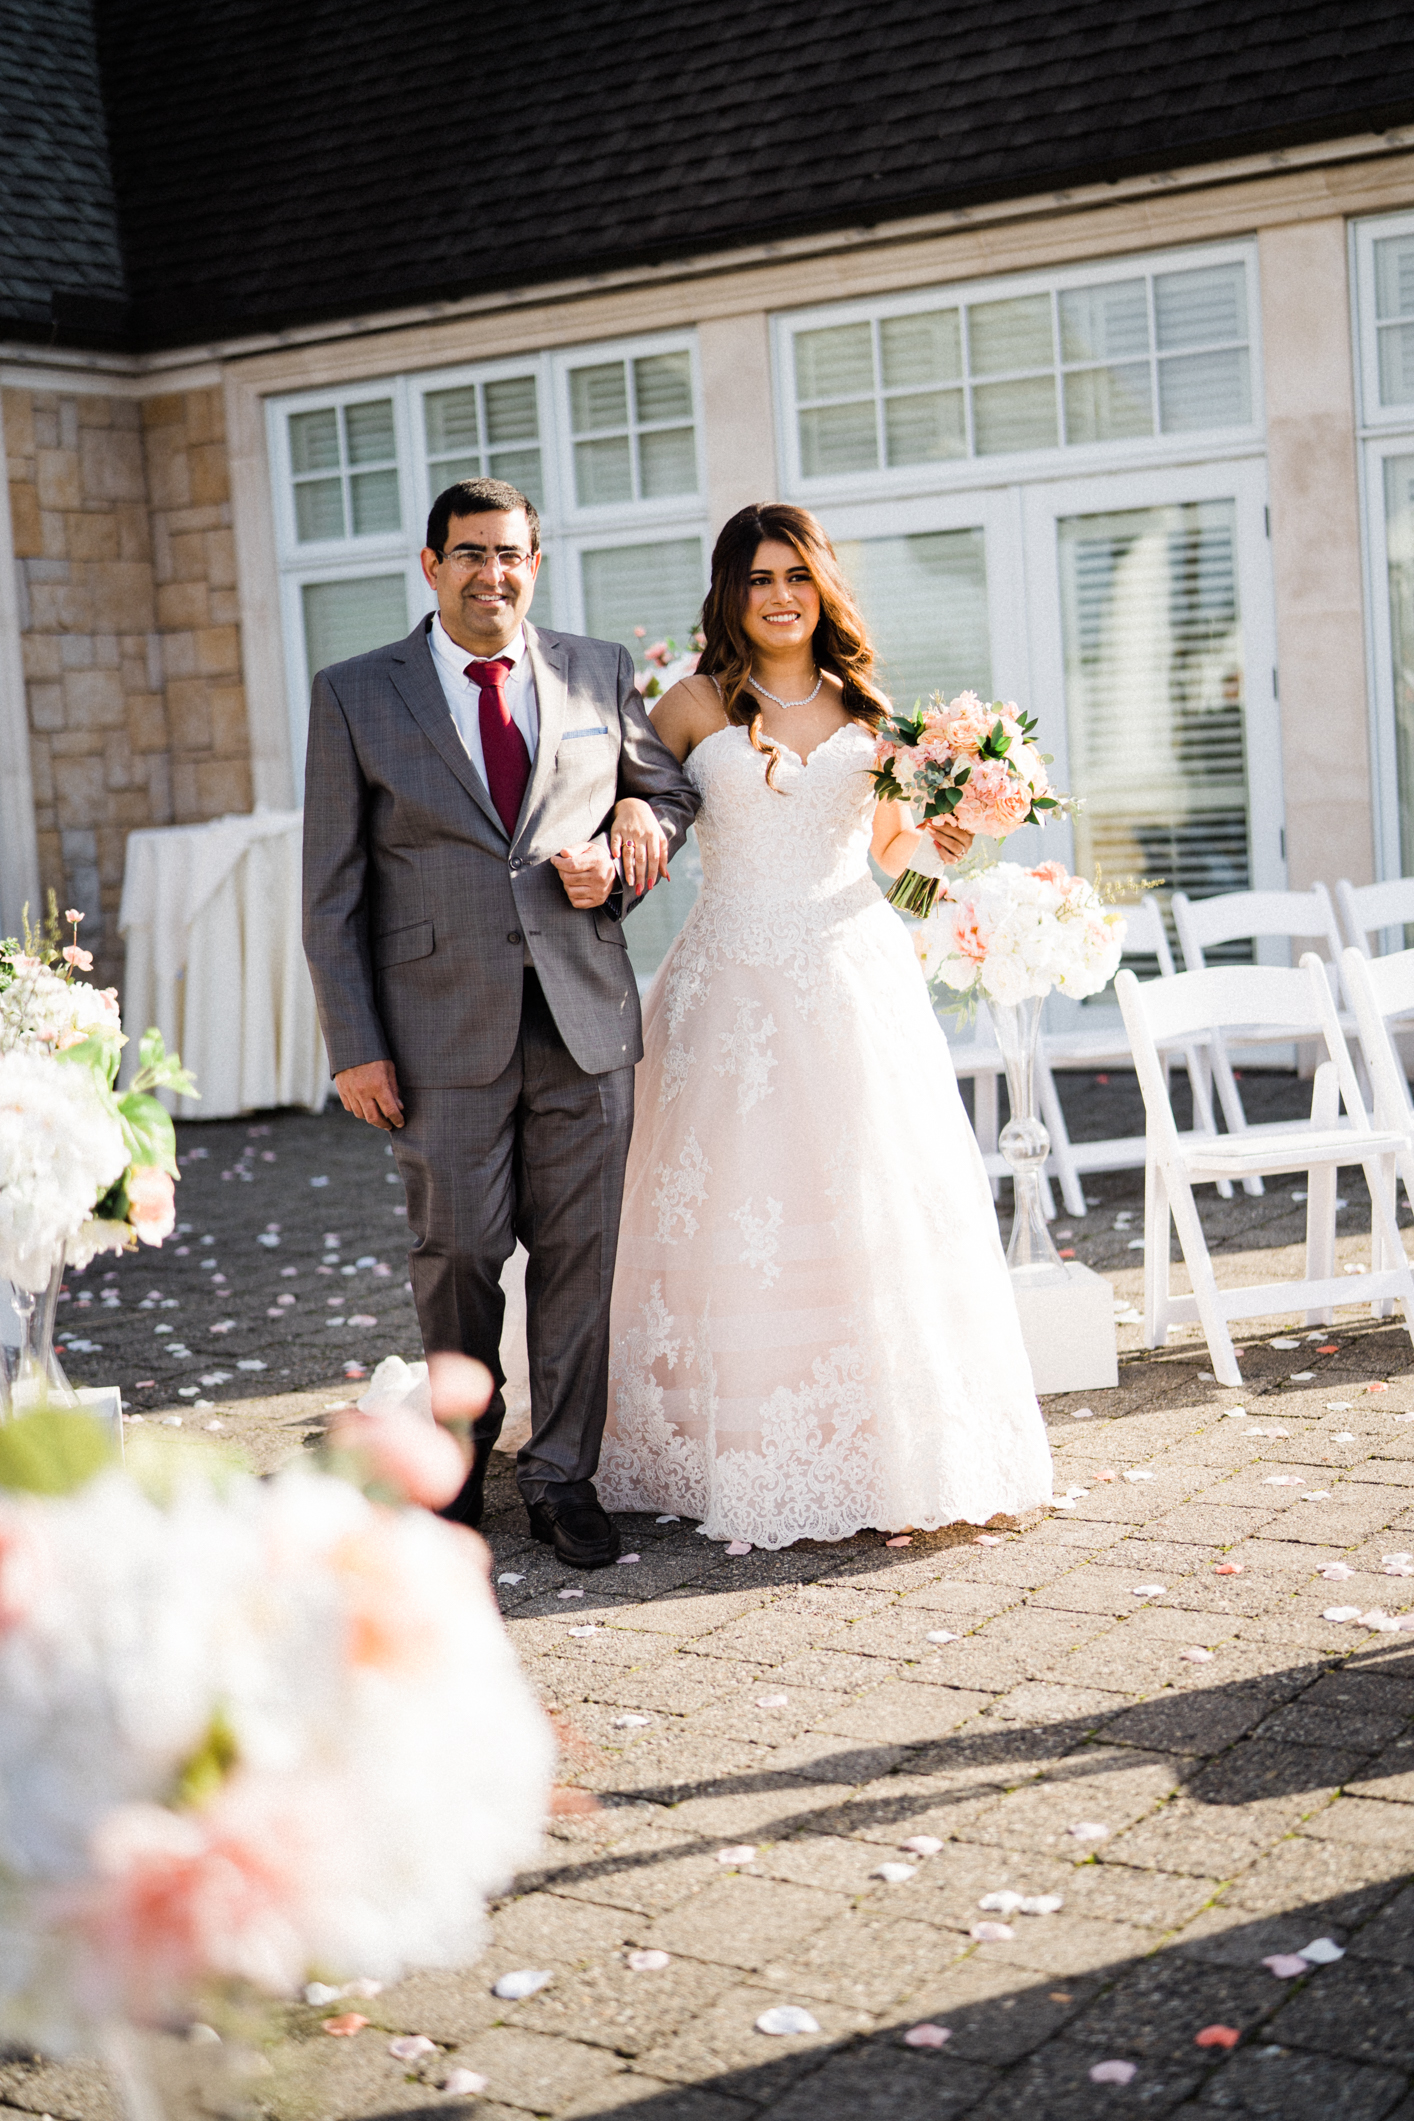 father walks daughter down the aisle at outside wedding venue at Newcastle golf club in Renton